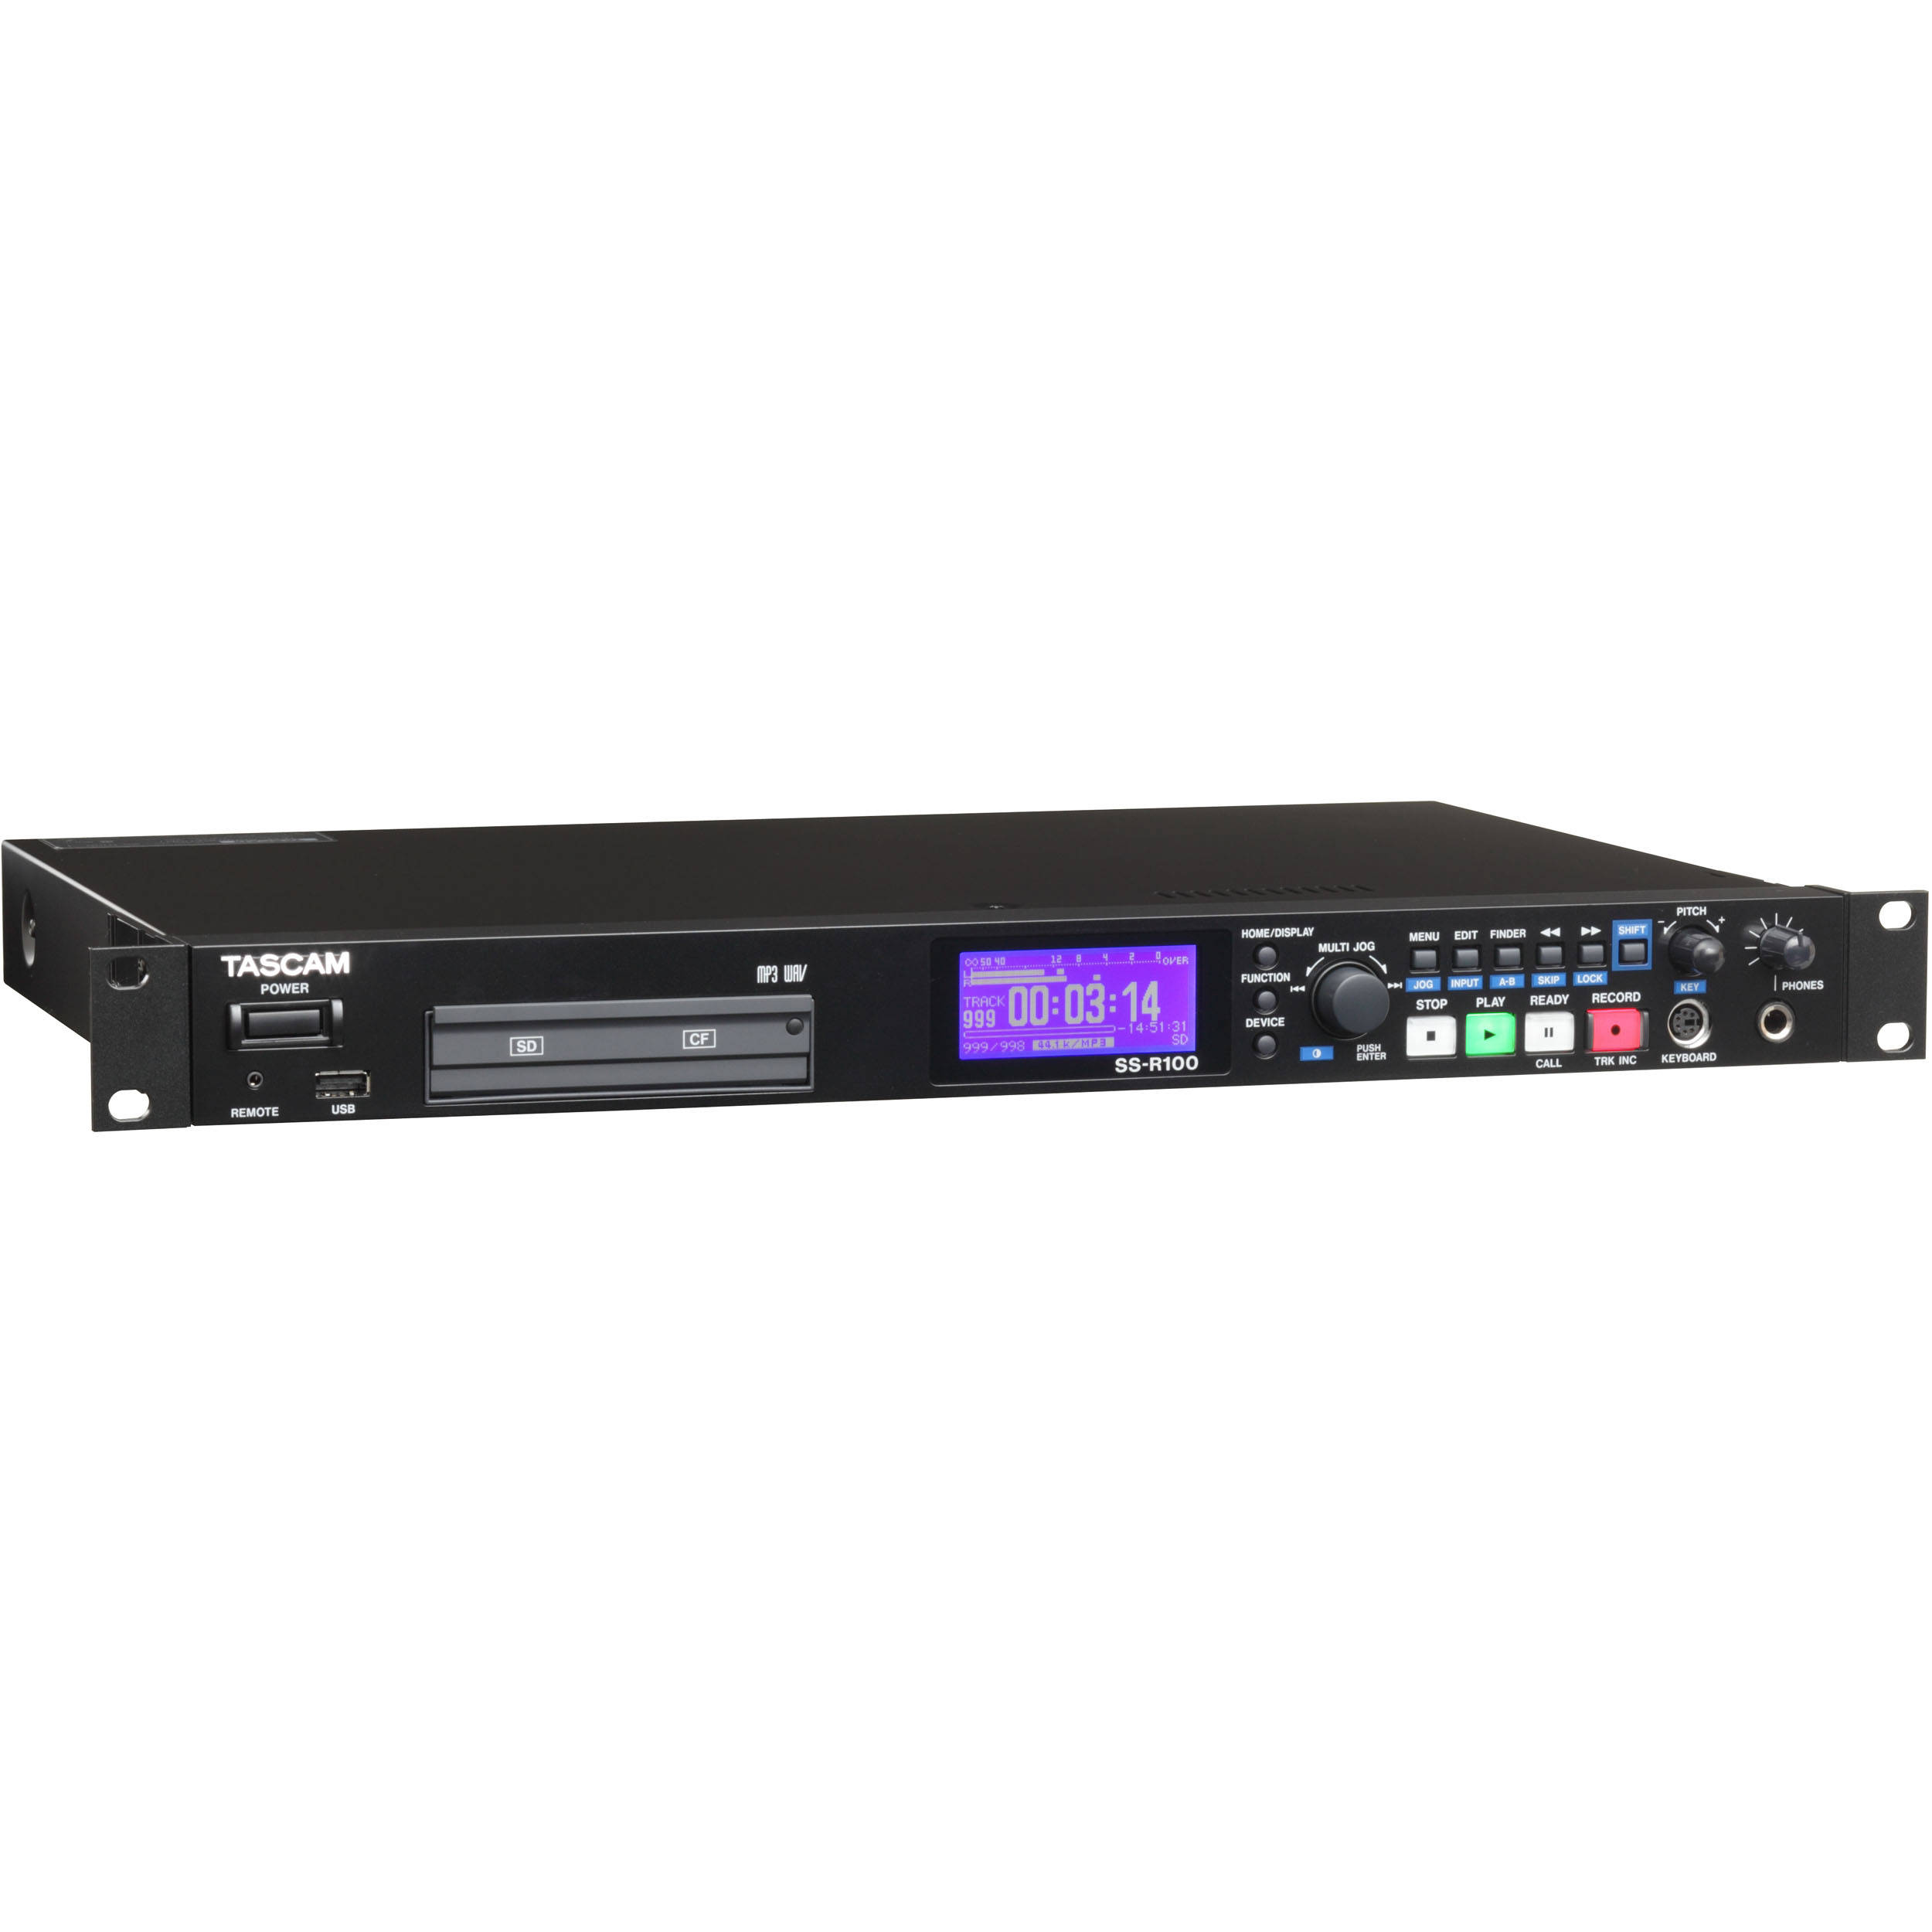 Tascam Single-rackspace Solid